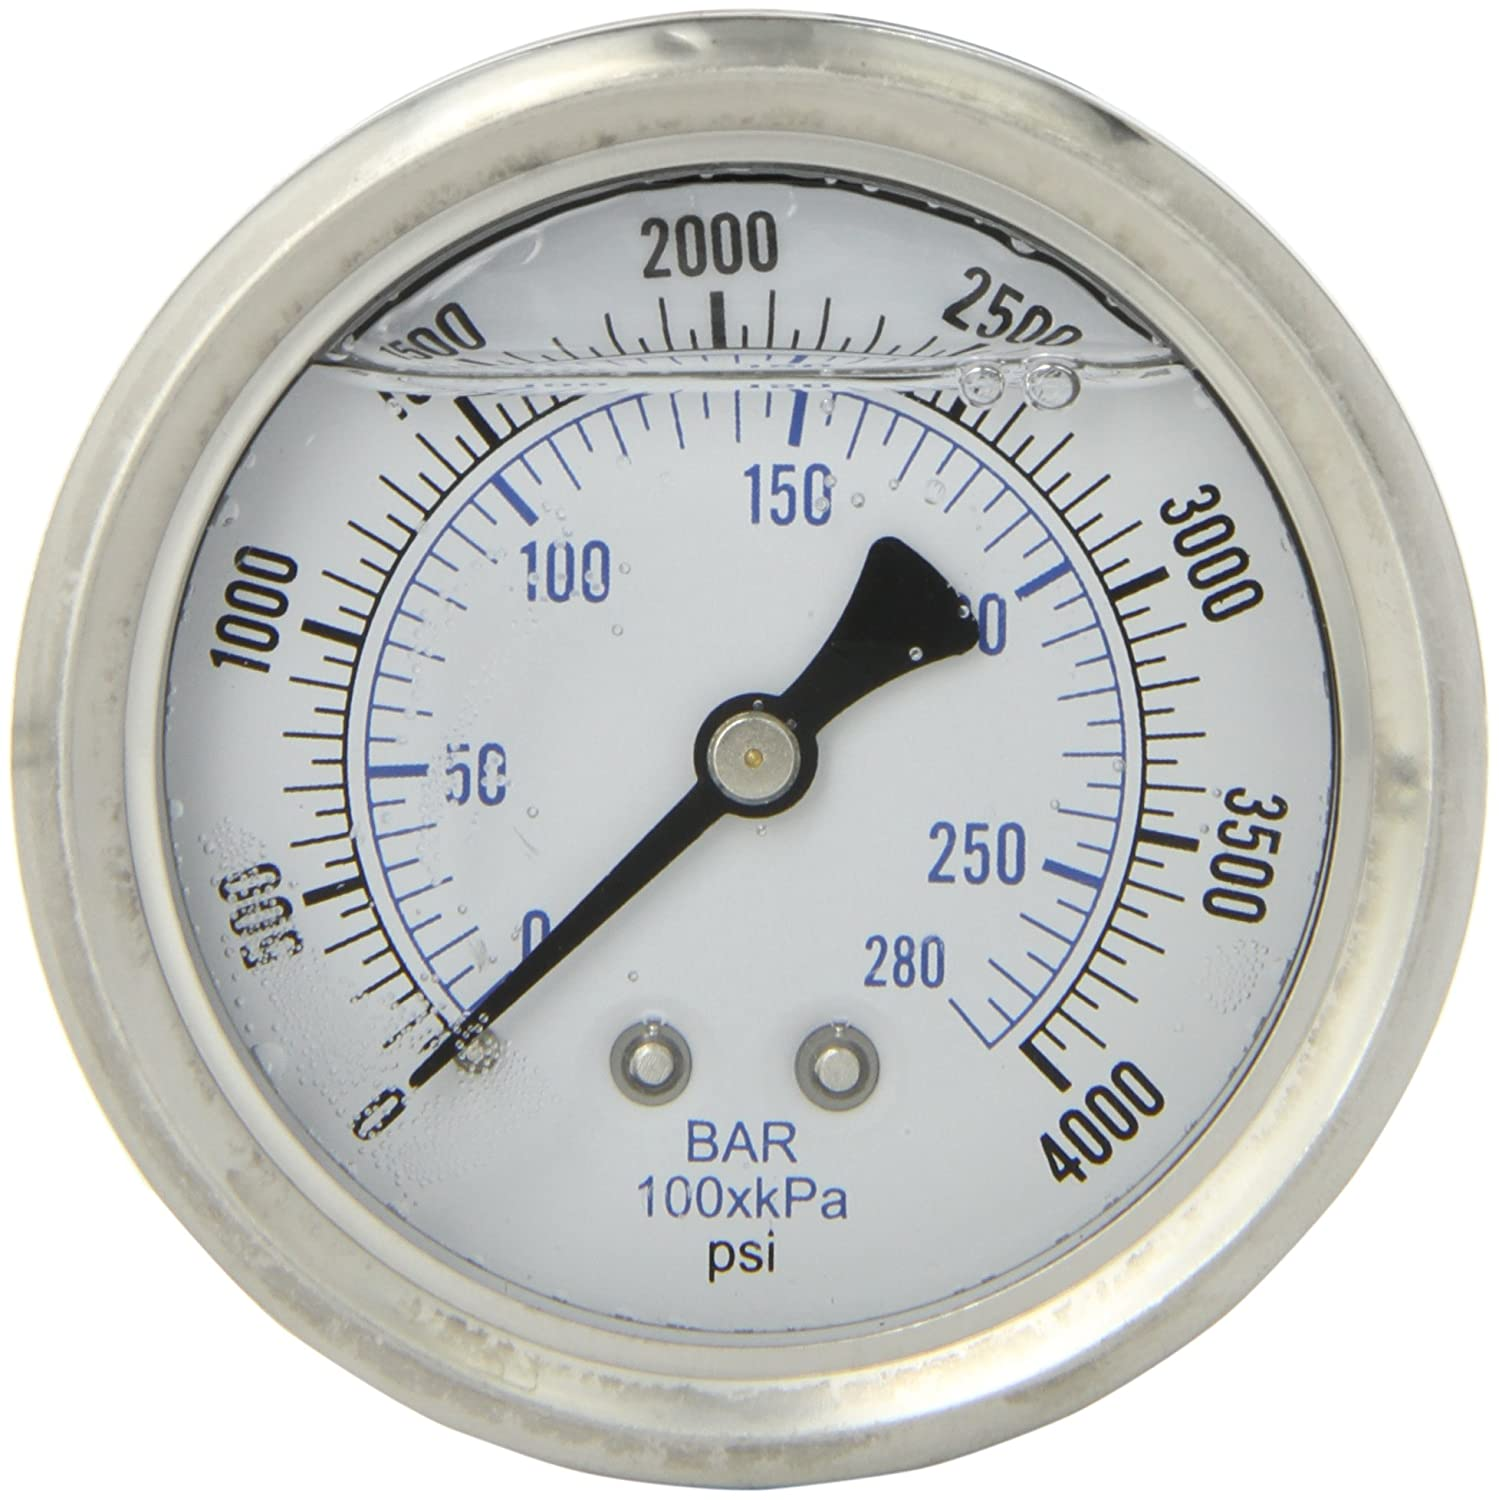 PIC Gauge PRO 202L 254Q Glycerin Filled Industrial Center Back Mount Pressure Gauge with Stainless Steel Case Brass Internals Plastic Lens 2 1 2 Dial Size 1 4 Male NPT 0 4000 psi